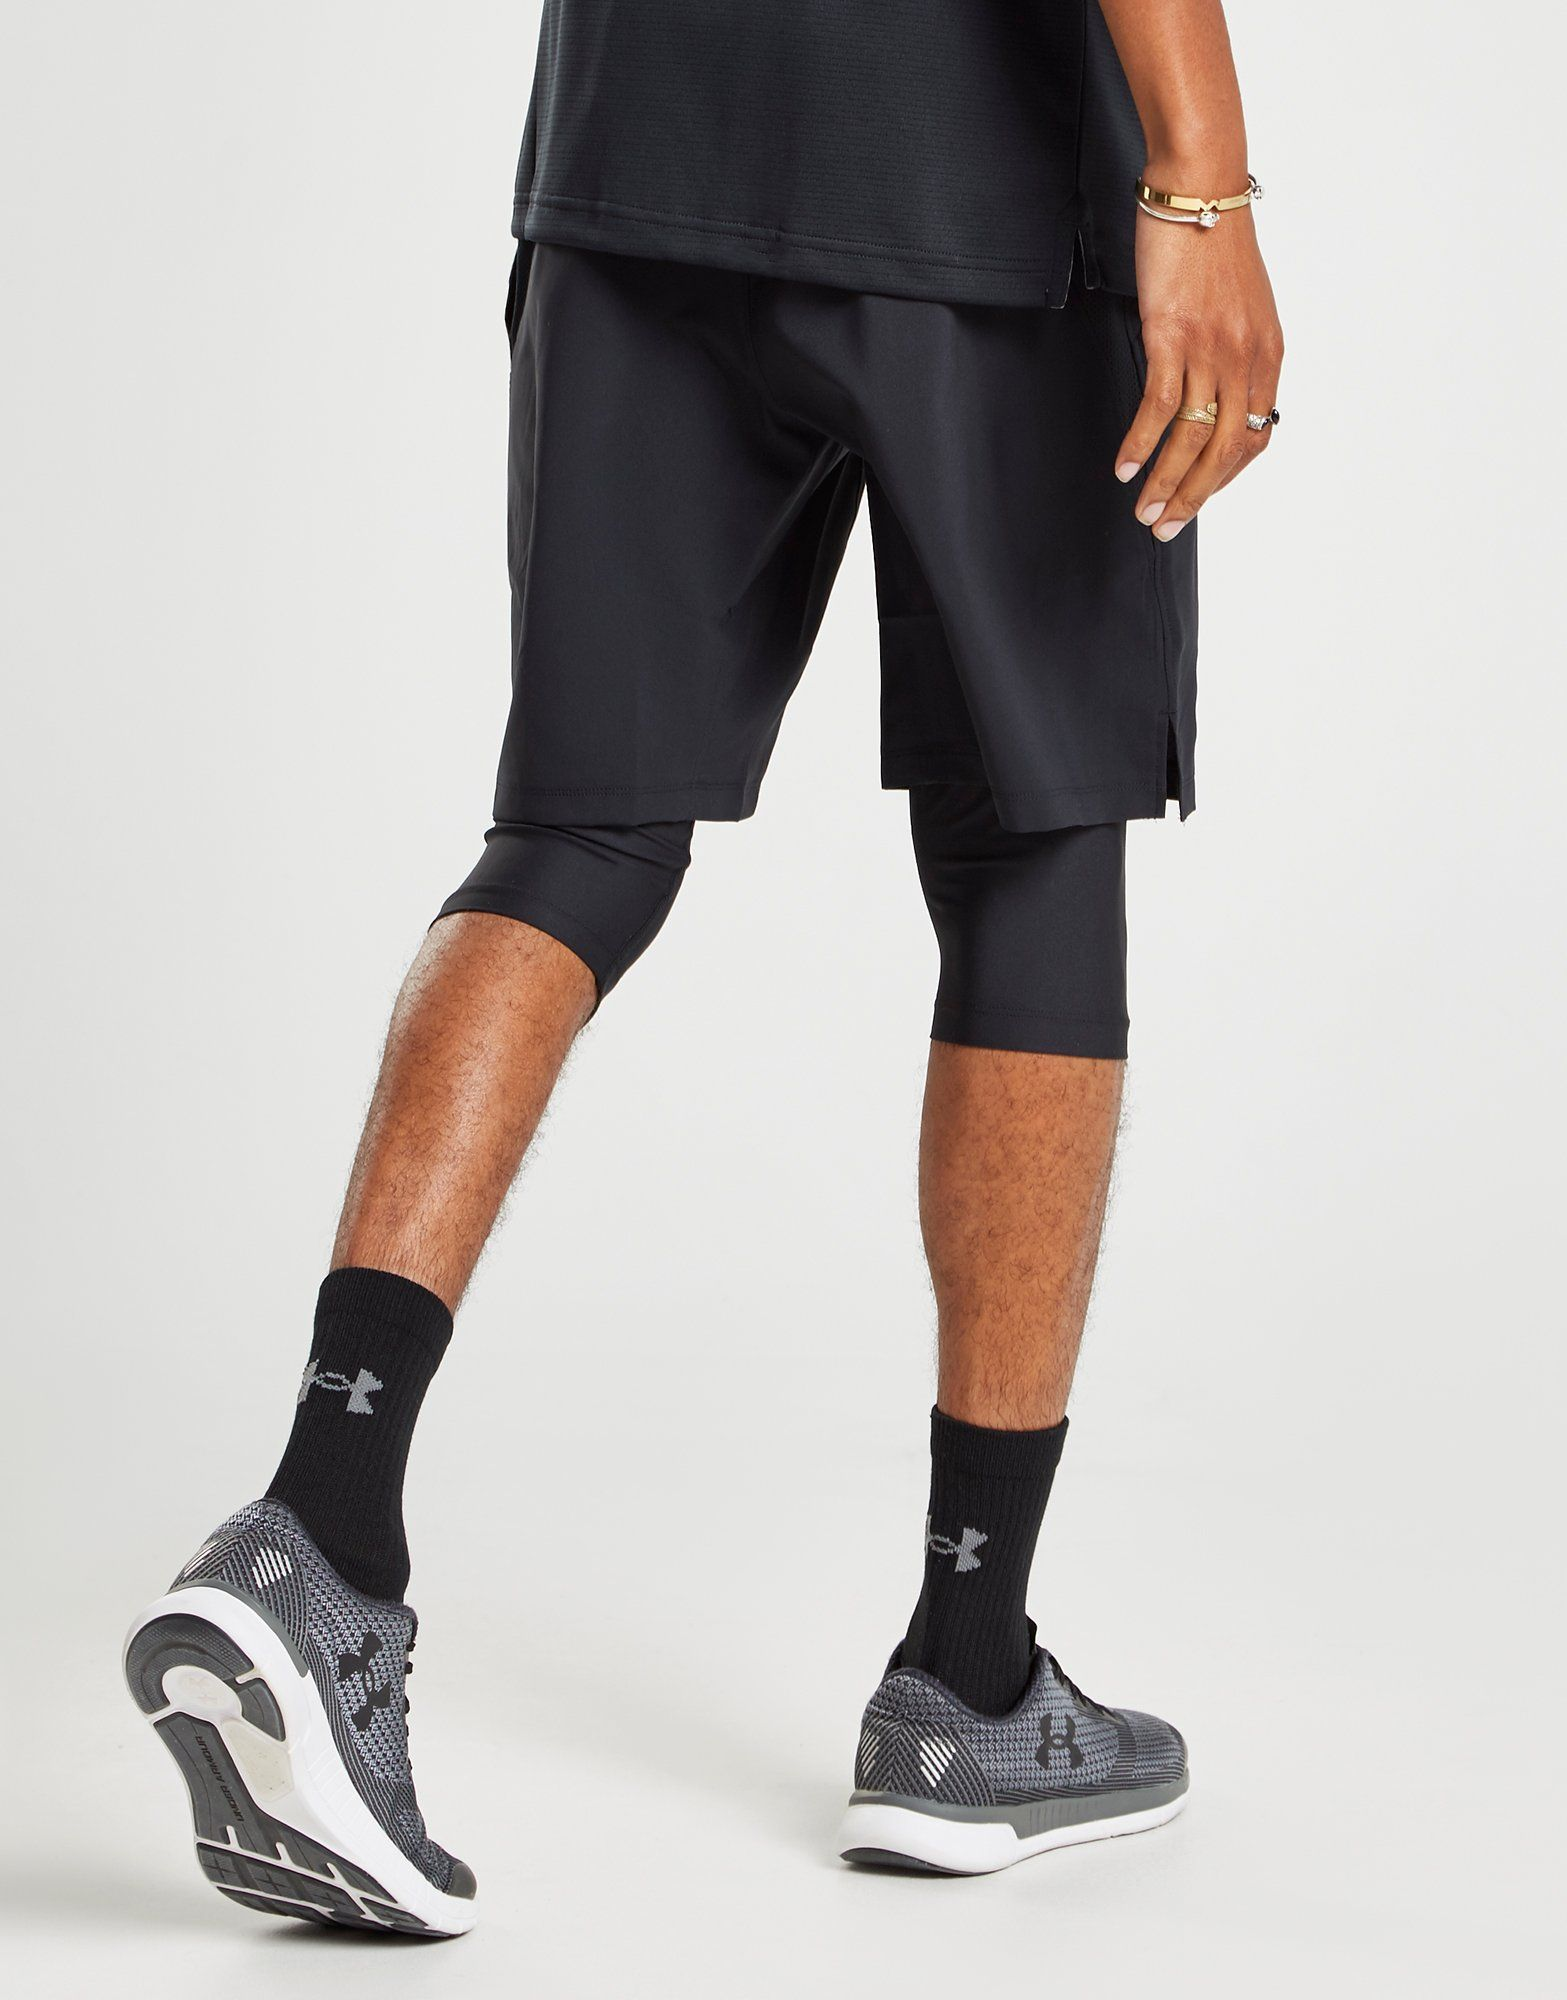 Under Armour Launch 2 in 1 Long Shorts